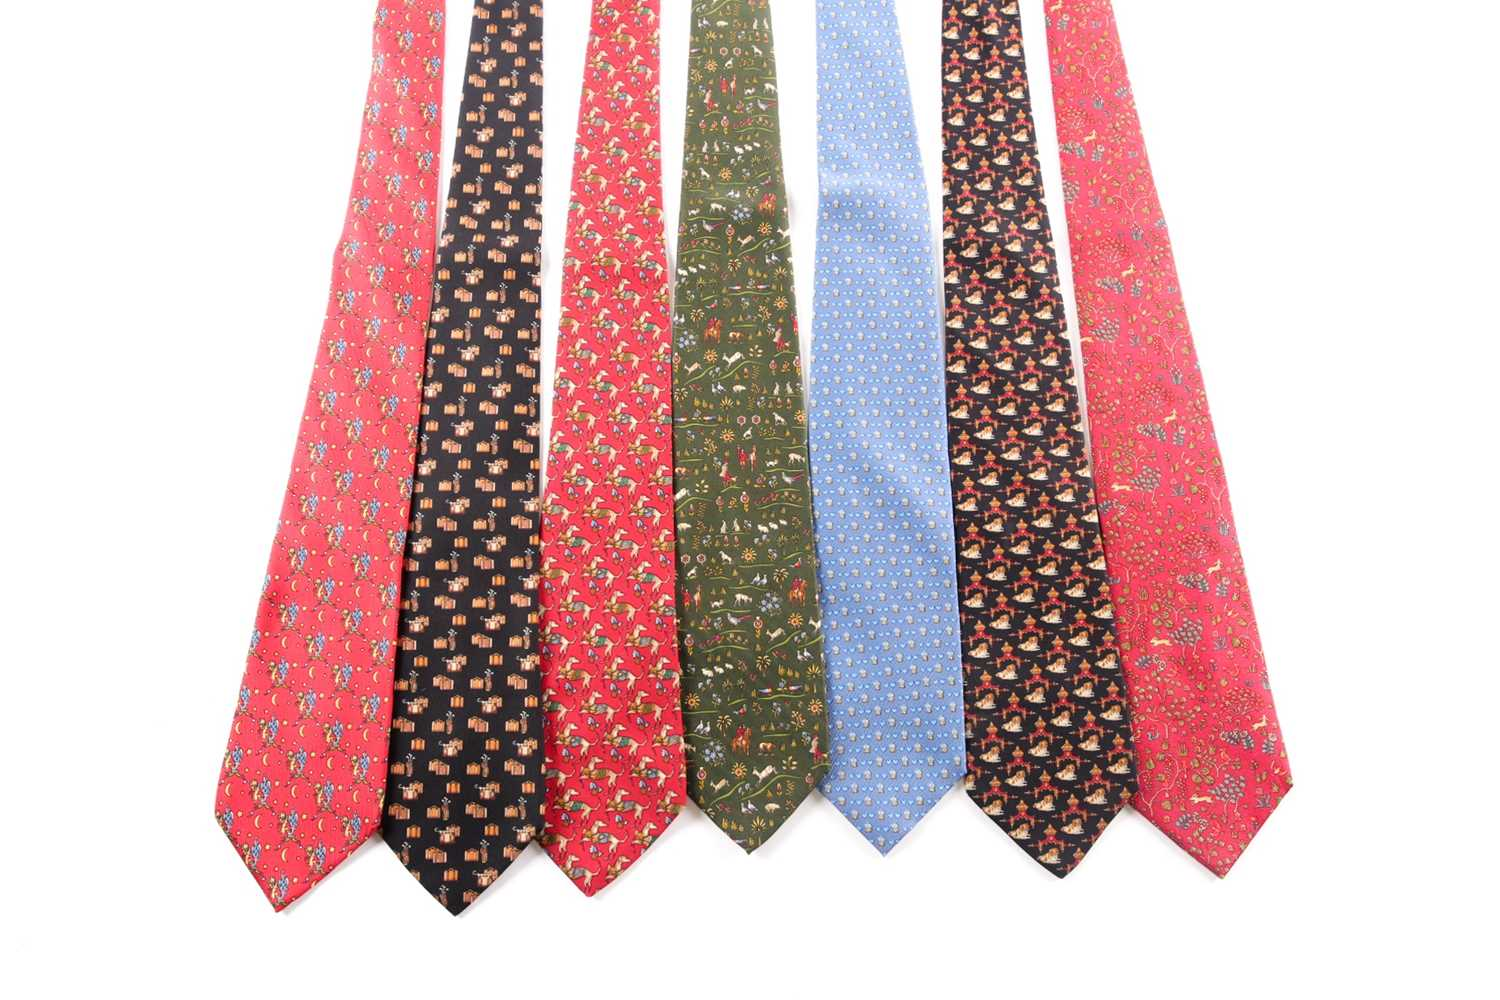 A group of seven Ferrogamo silk ties, various designs, in blue, red, green, and black silk. (7)